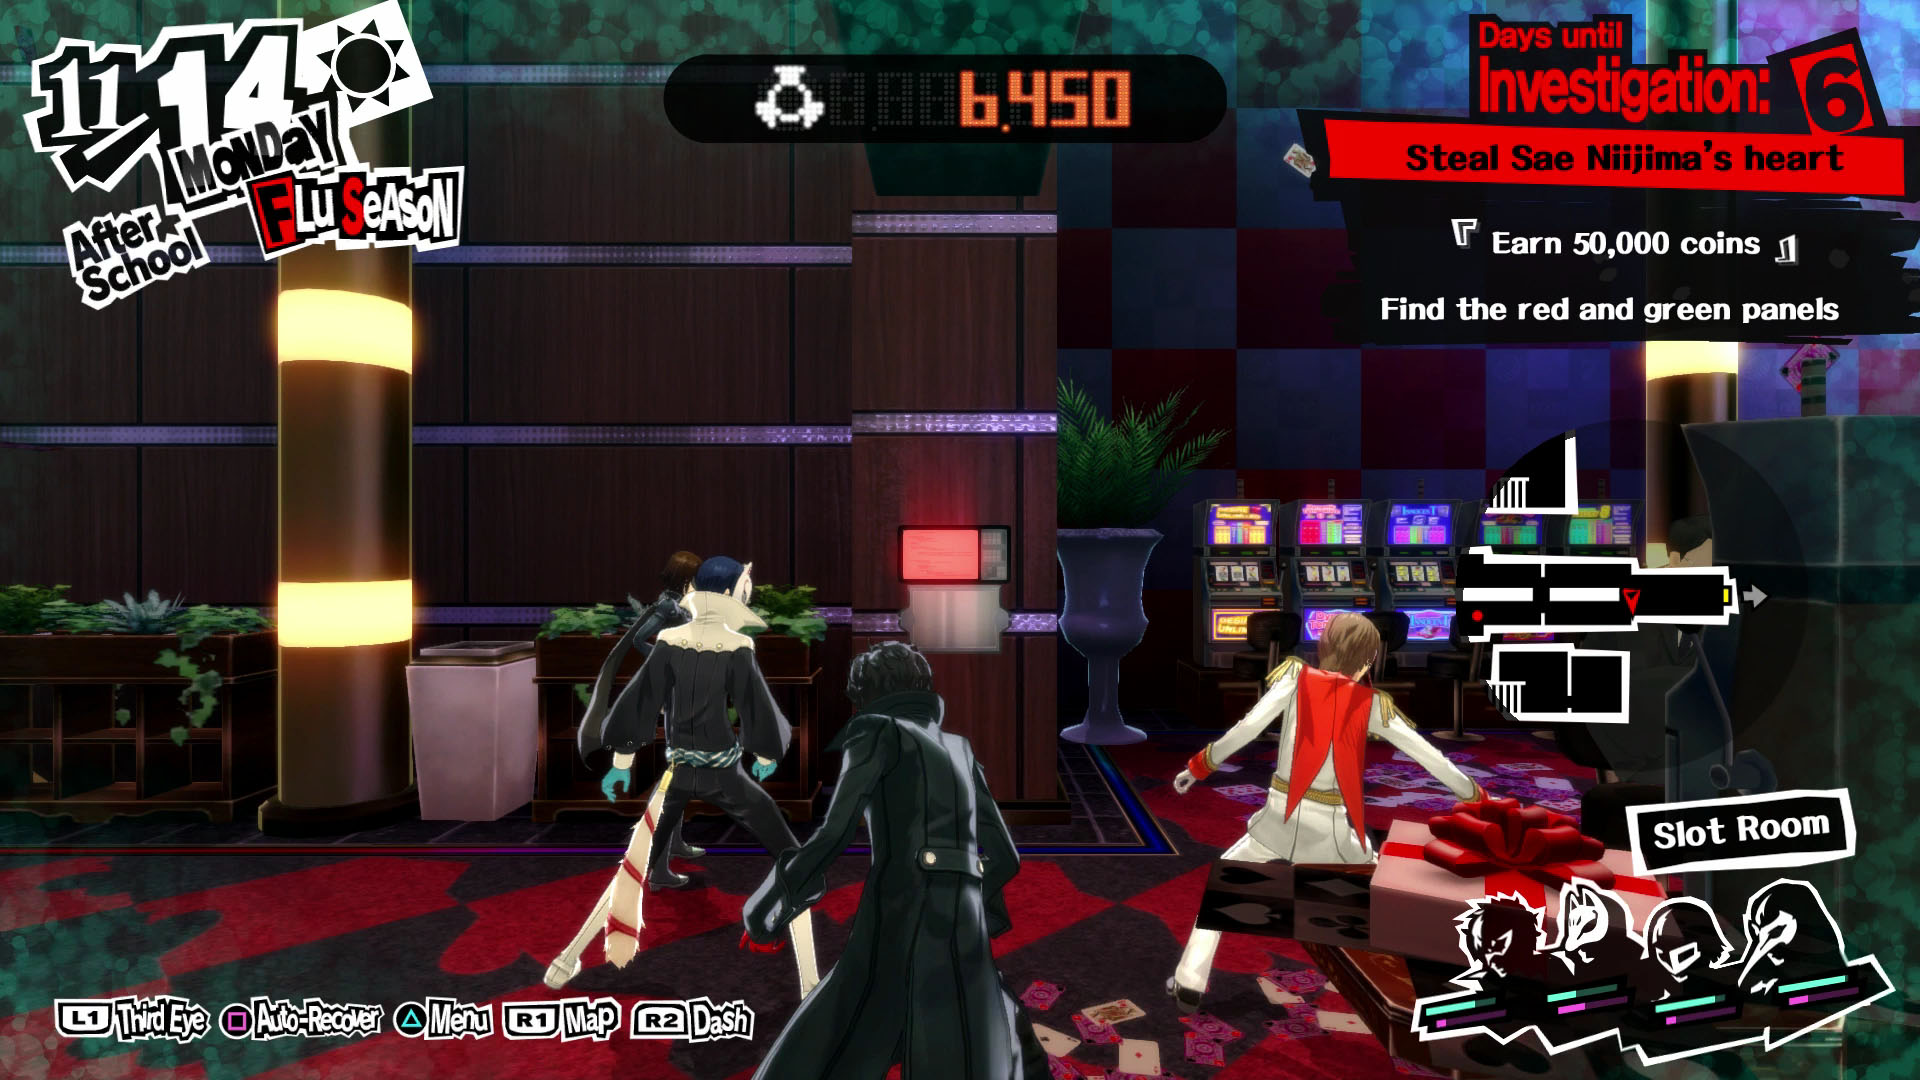 persona 5 casino where is the red panel